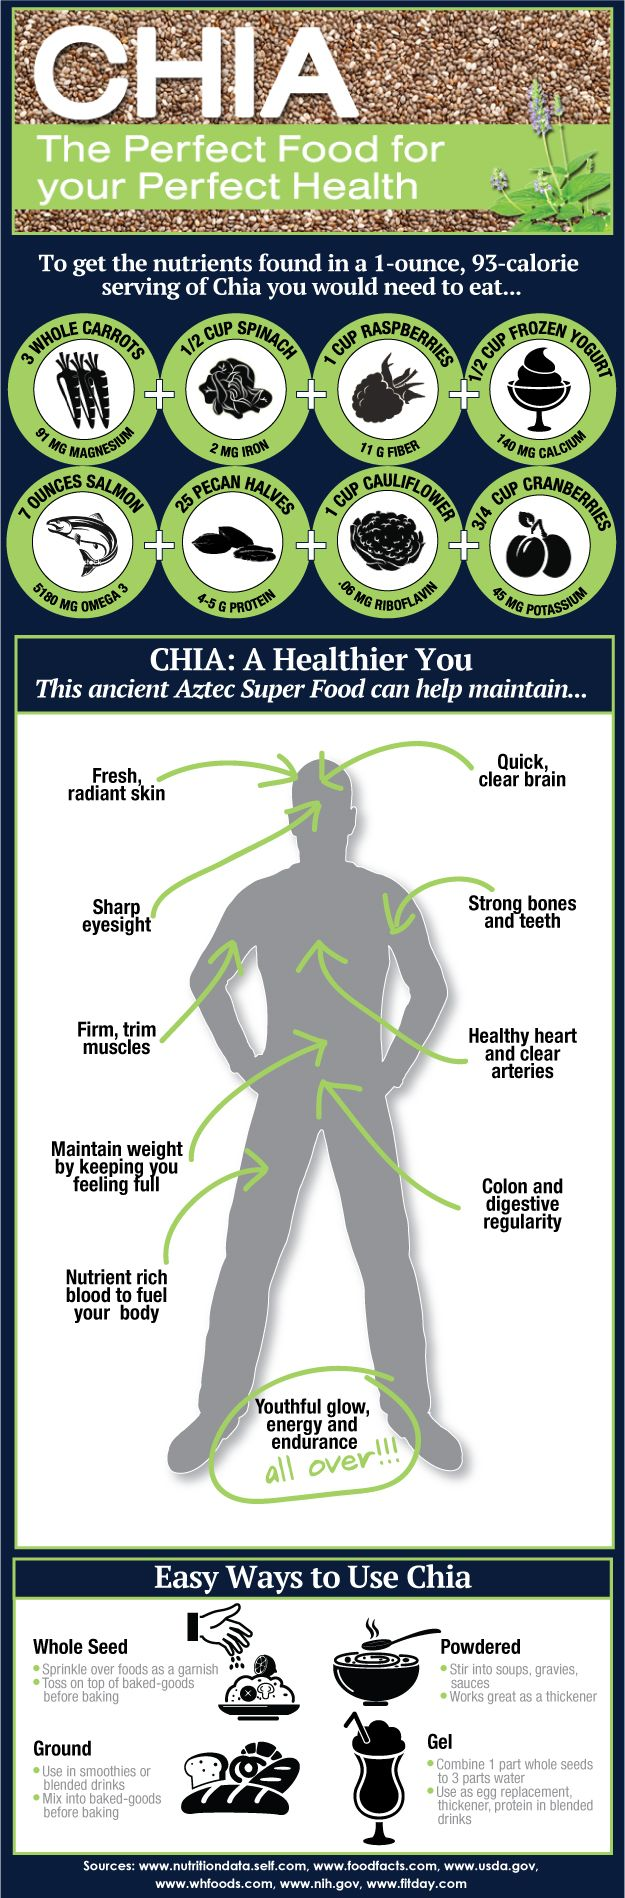 Healthy Foods Infographic - All about CHIA. Add a tspn of bentonite clay to chia porridge for detox.